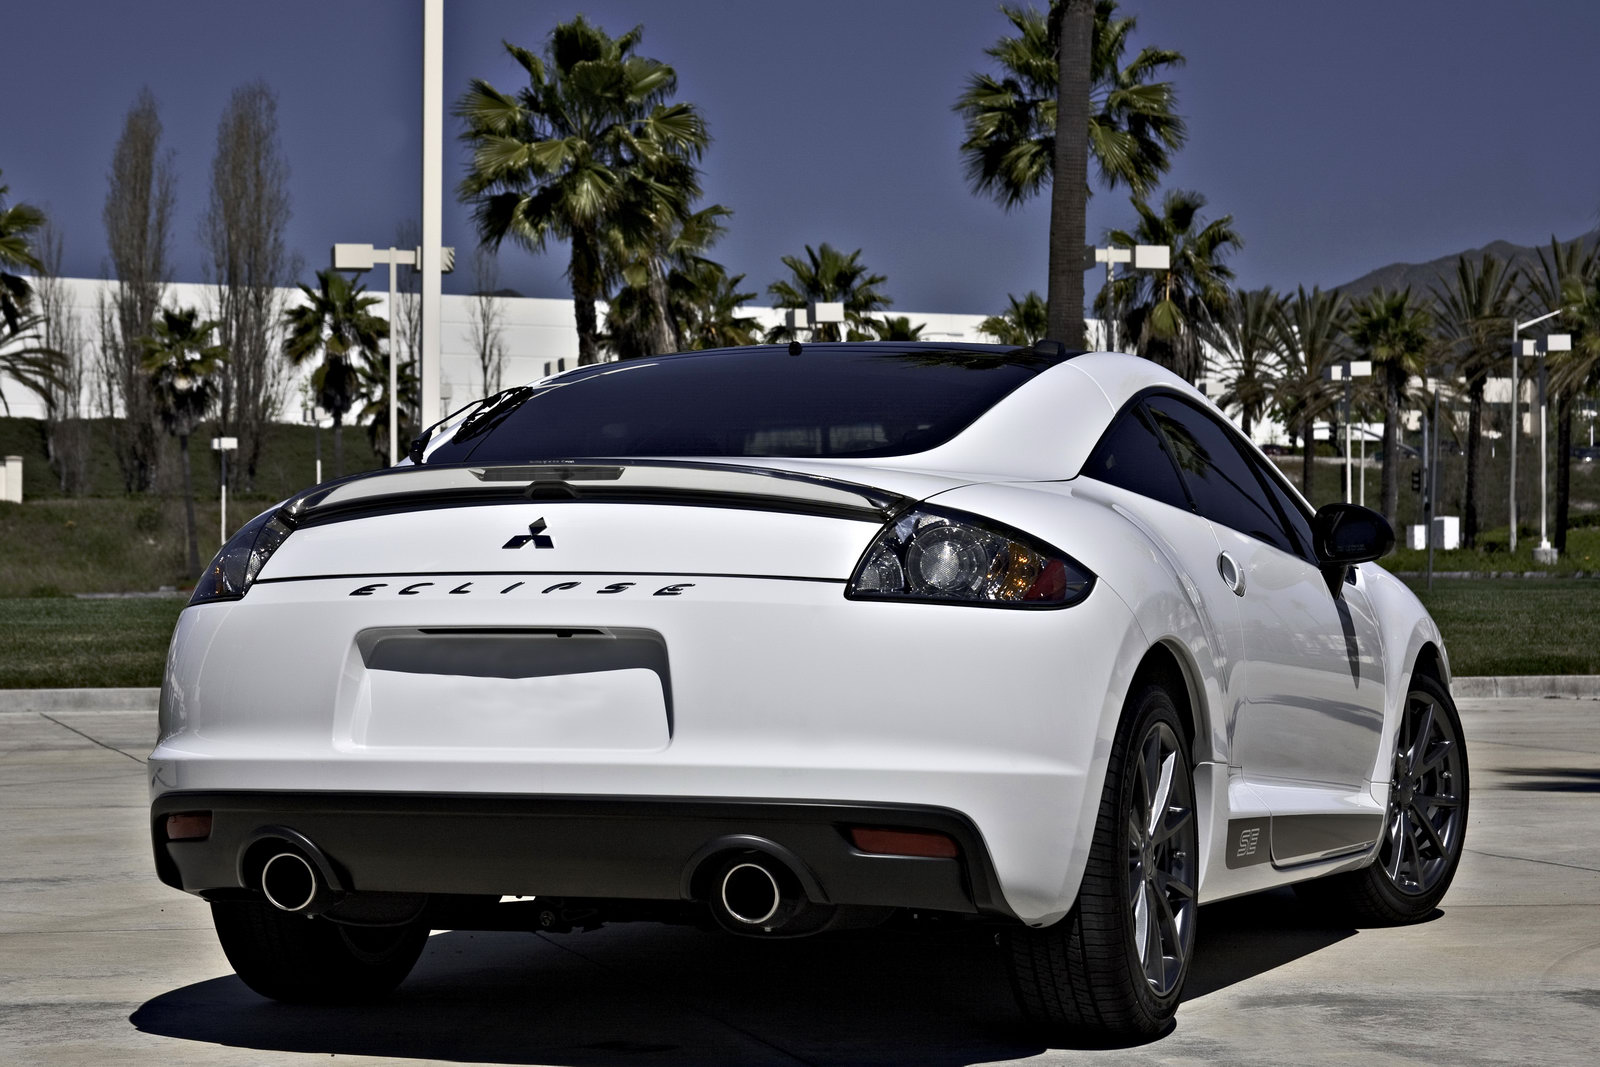 2011 Mitsubishi Eclipse SE 4 2012 SE Special Edition Series  A Short Car Review